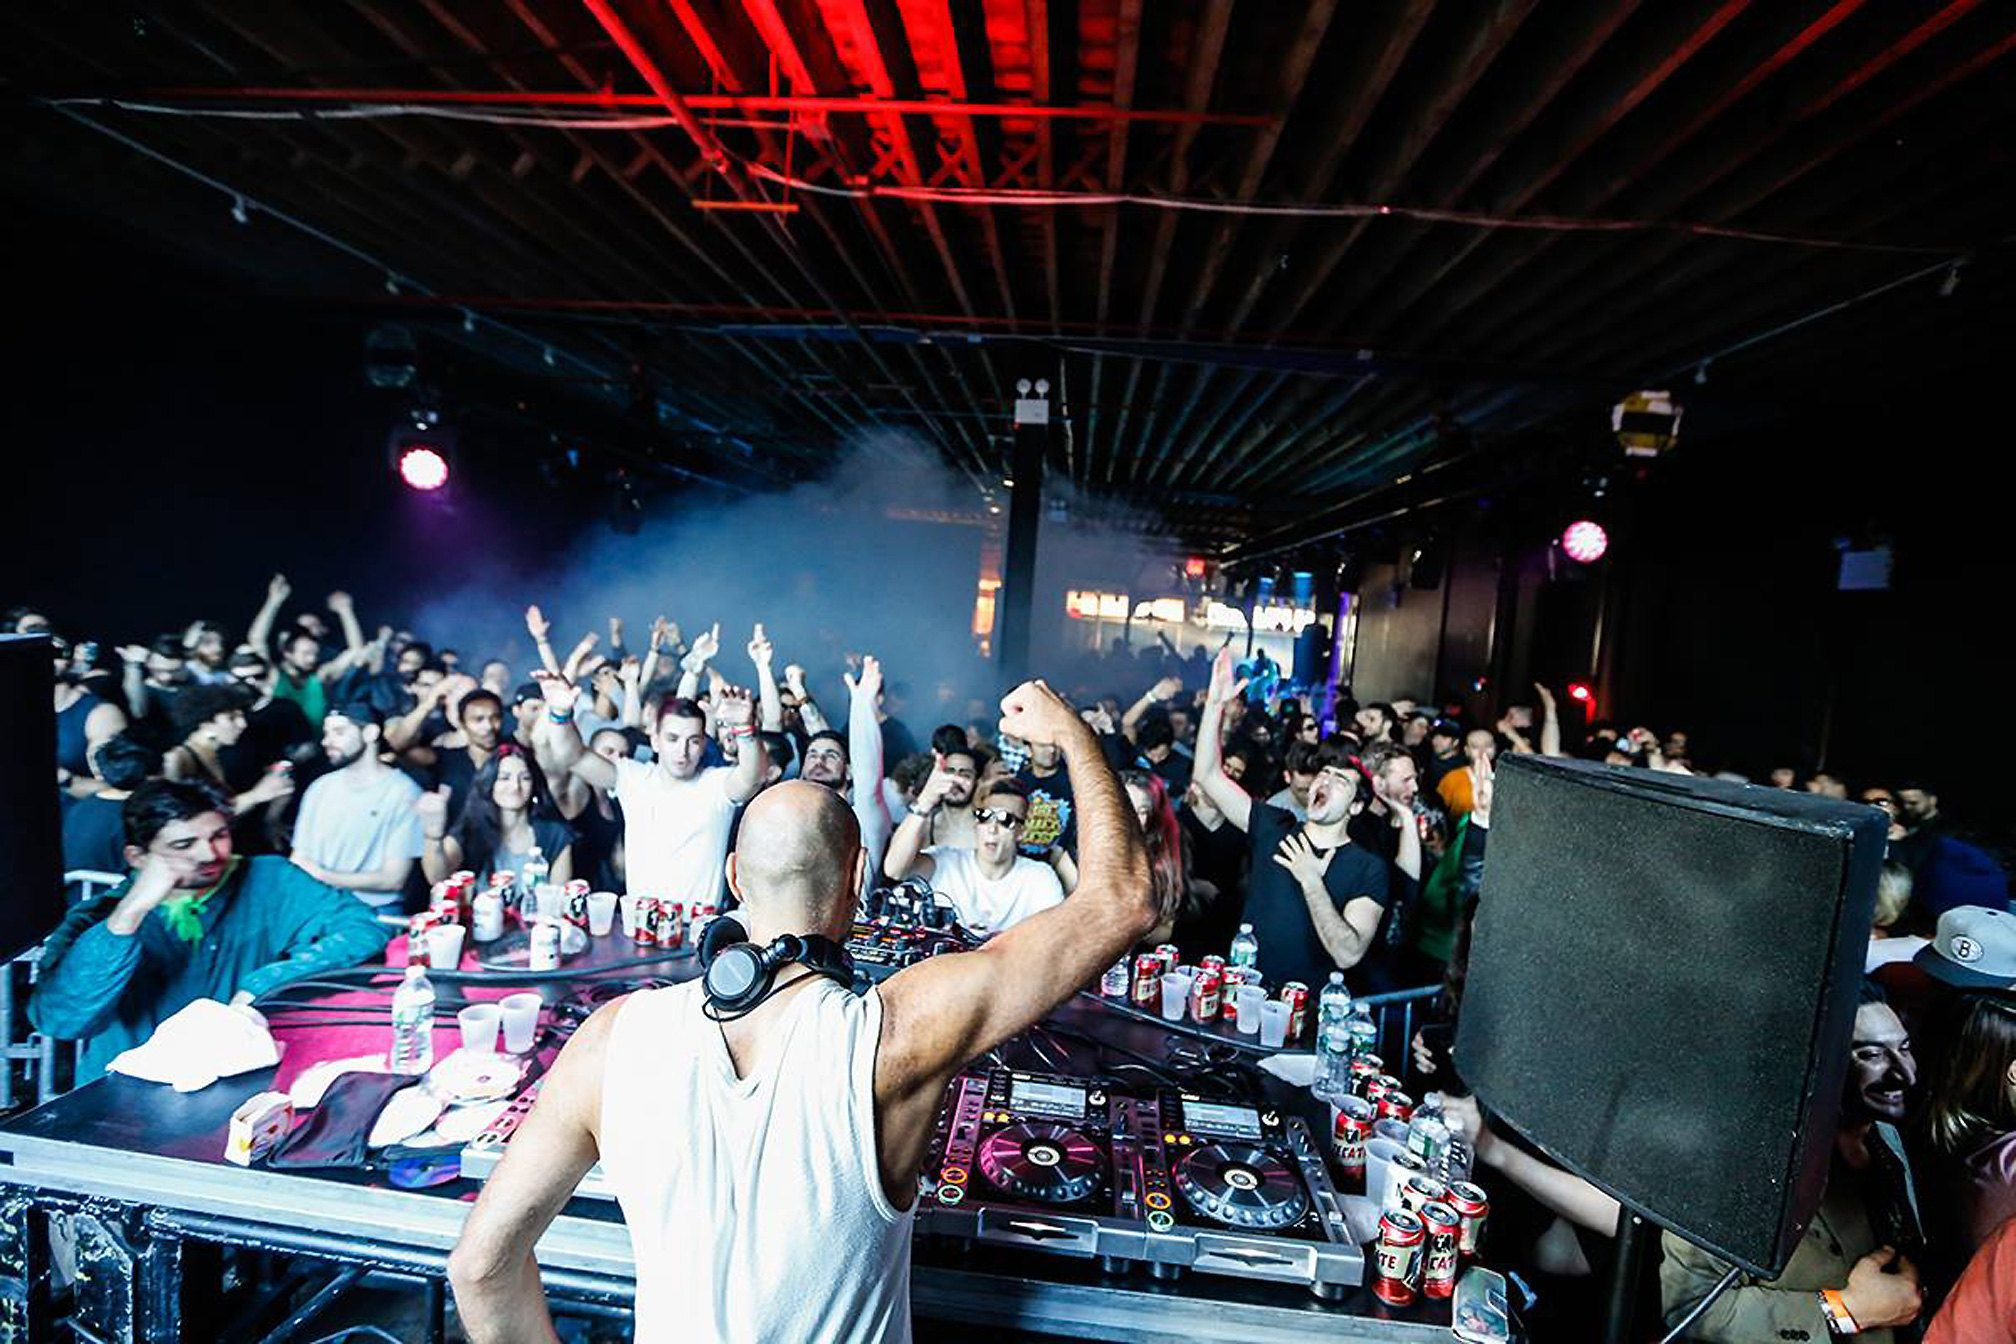 We want freedom: After-hours parties are the beating heart of New York  nightlife